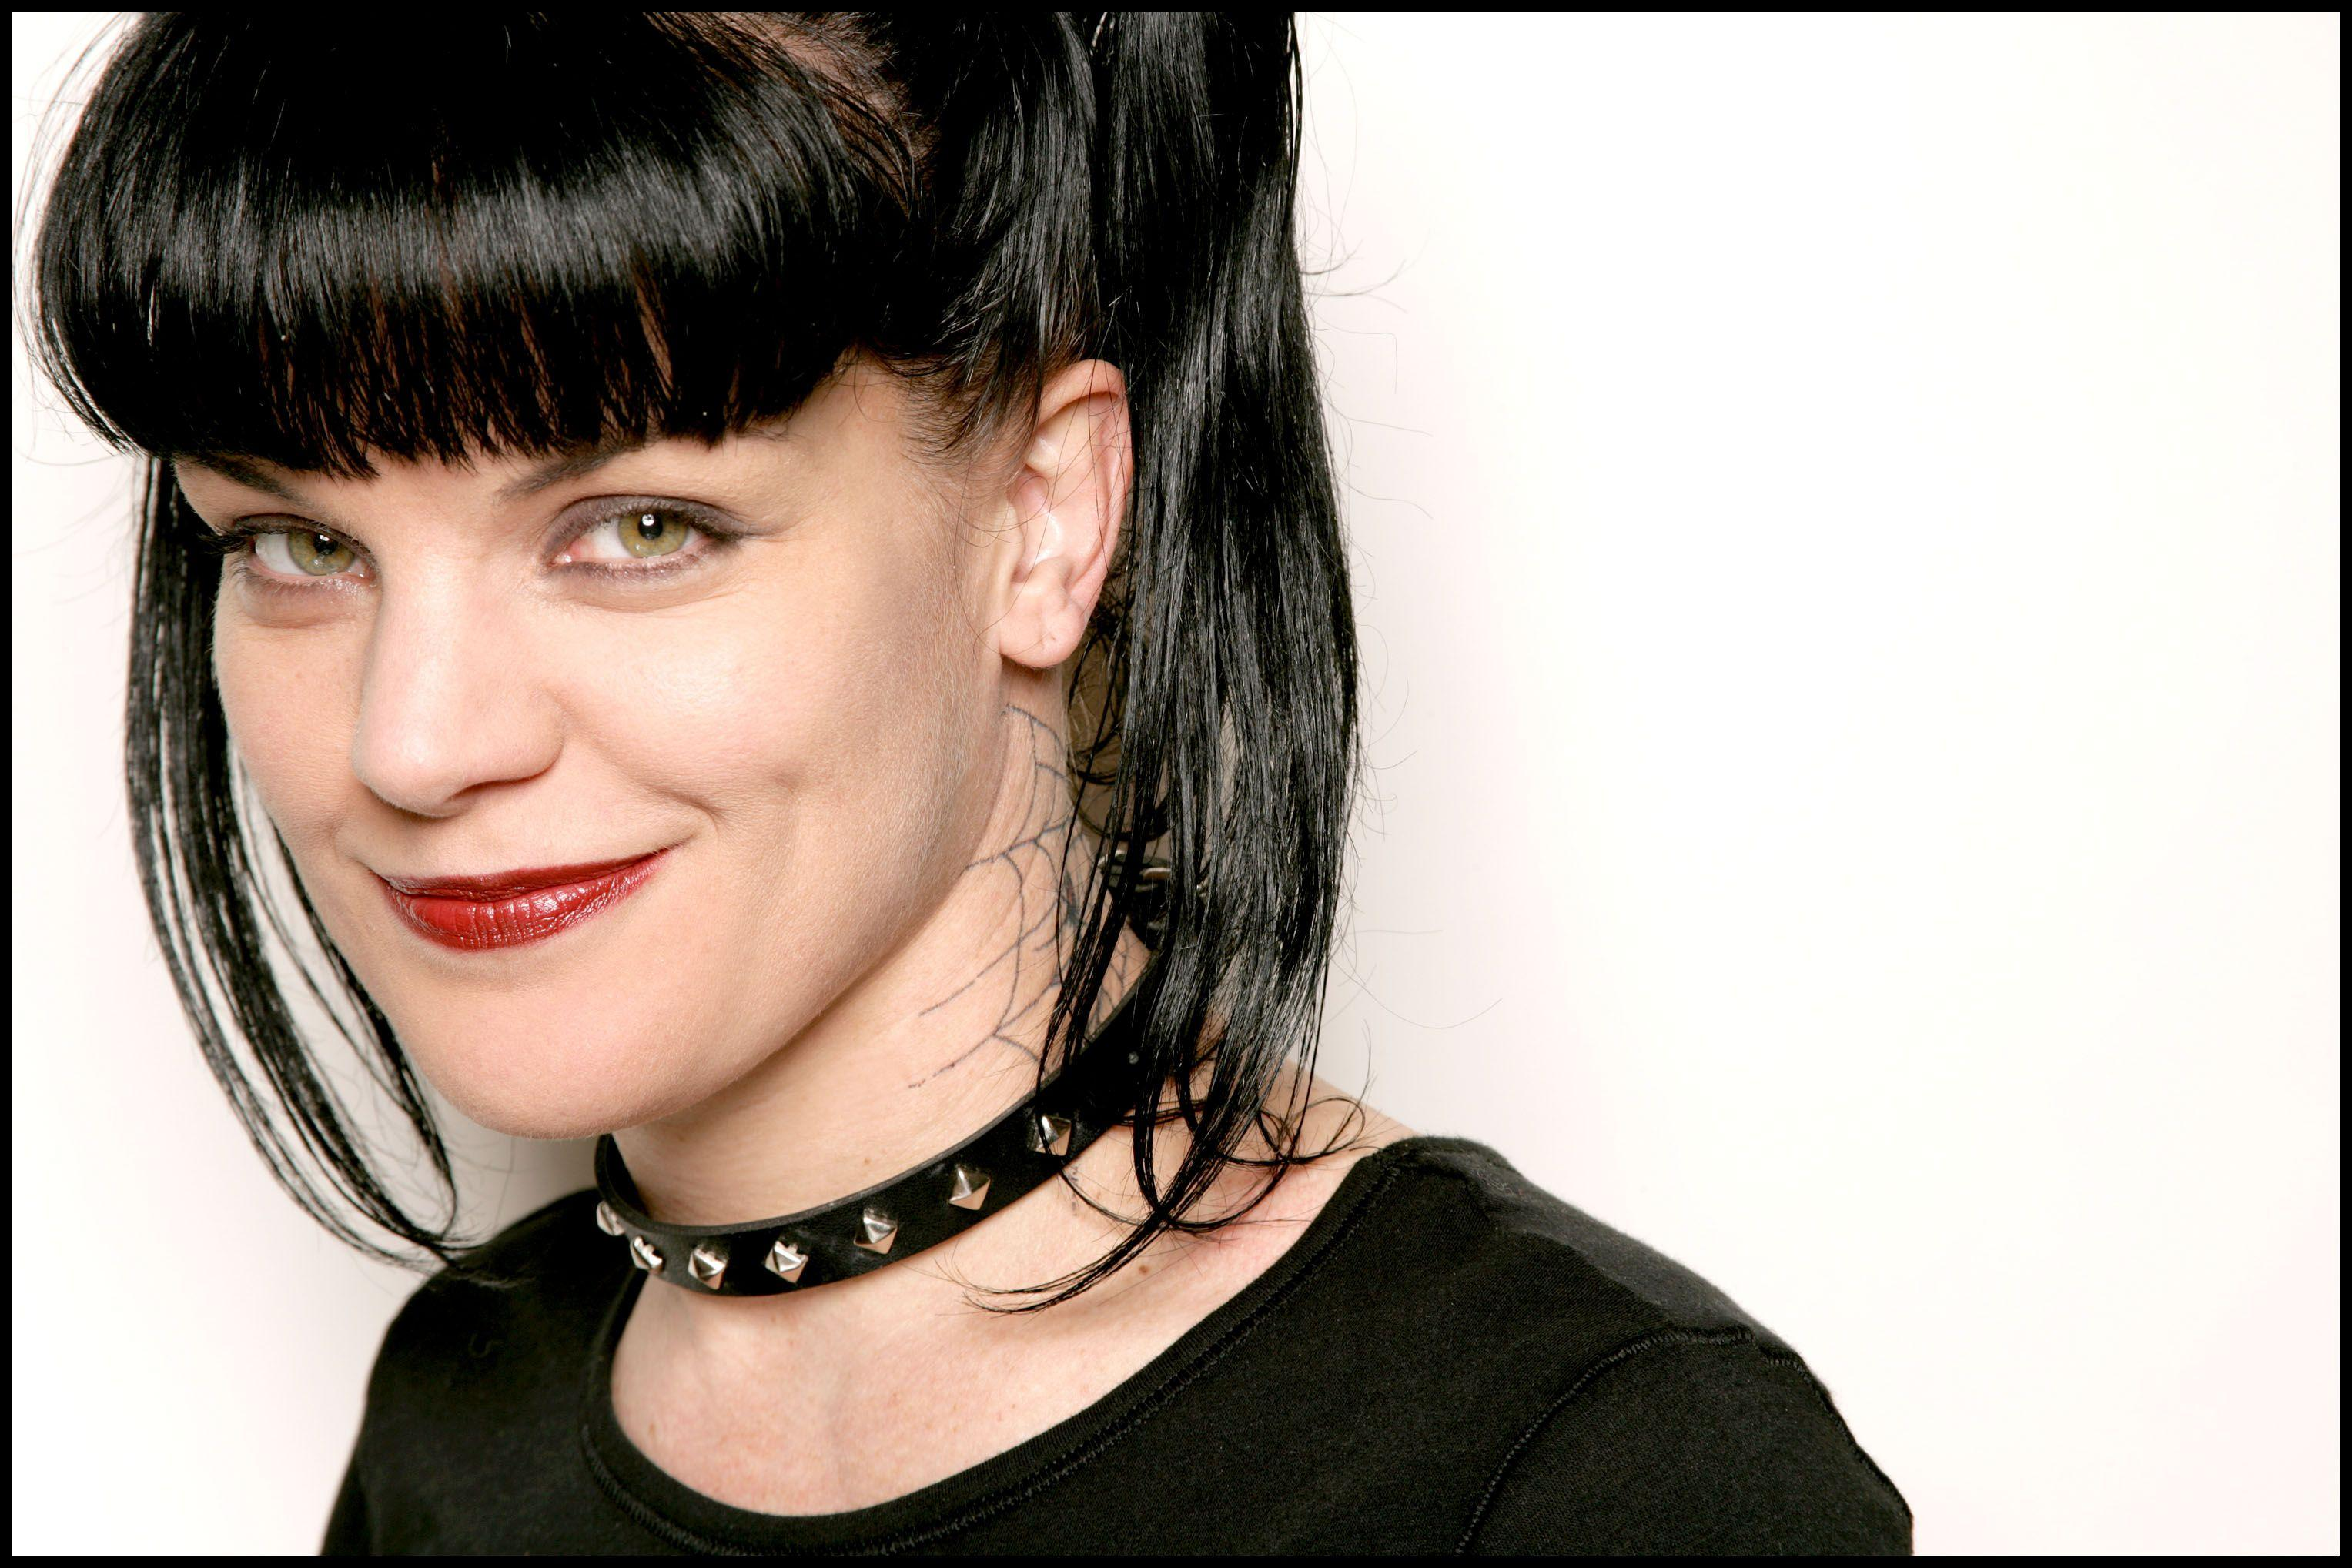 download di sfondi di abby sciuto abby ncis // tadencina ml